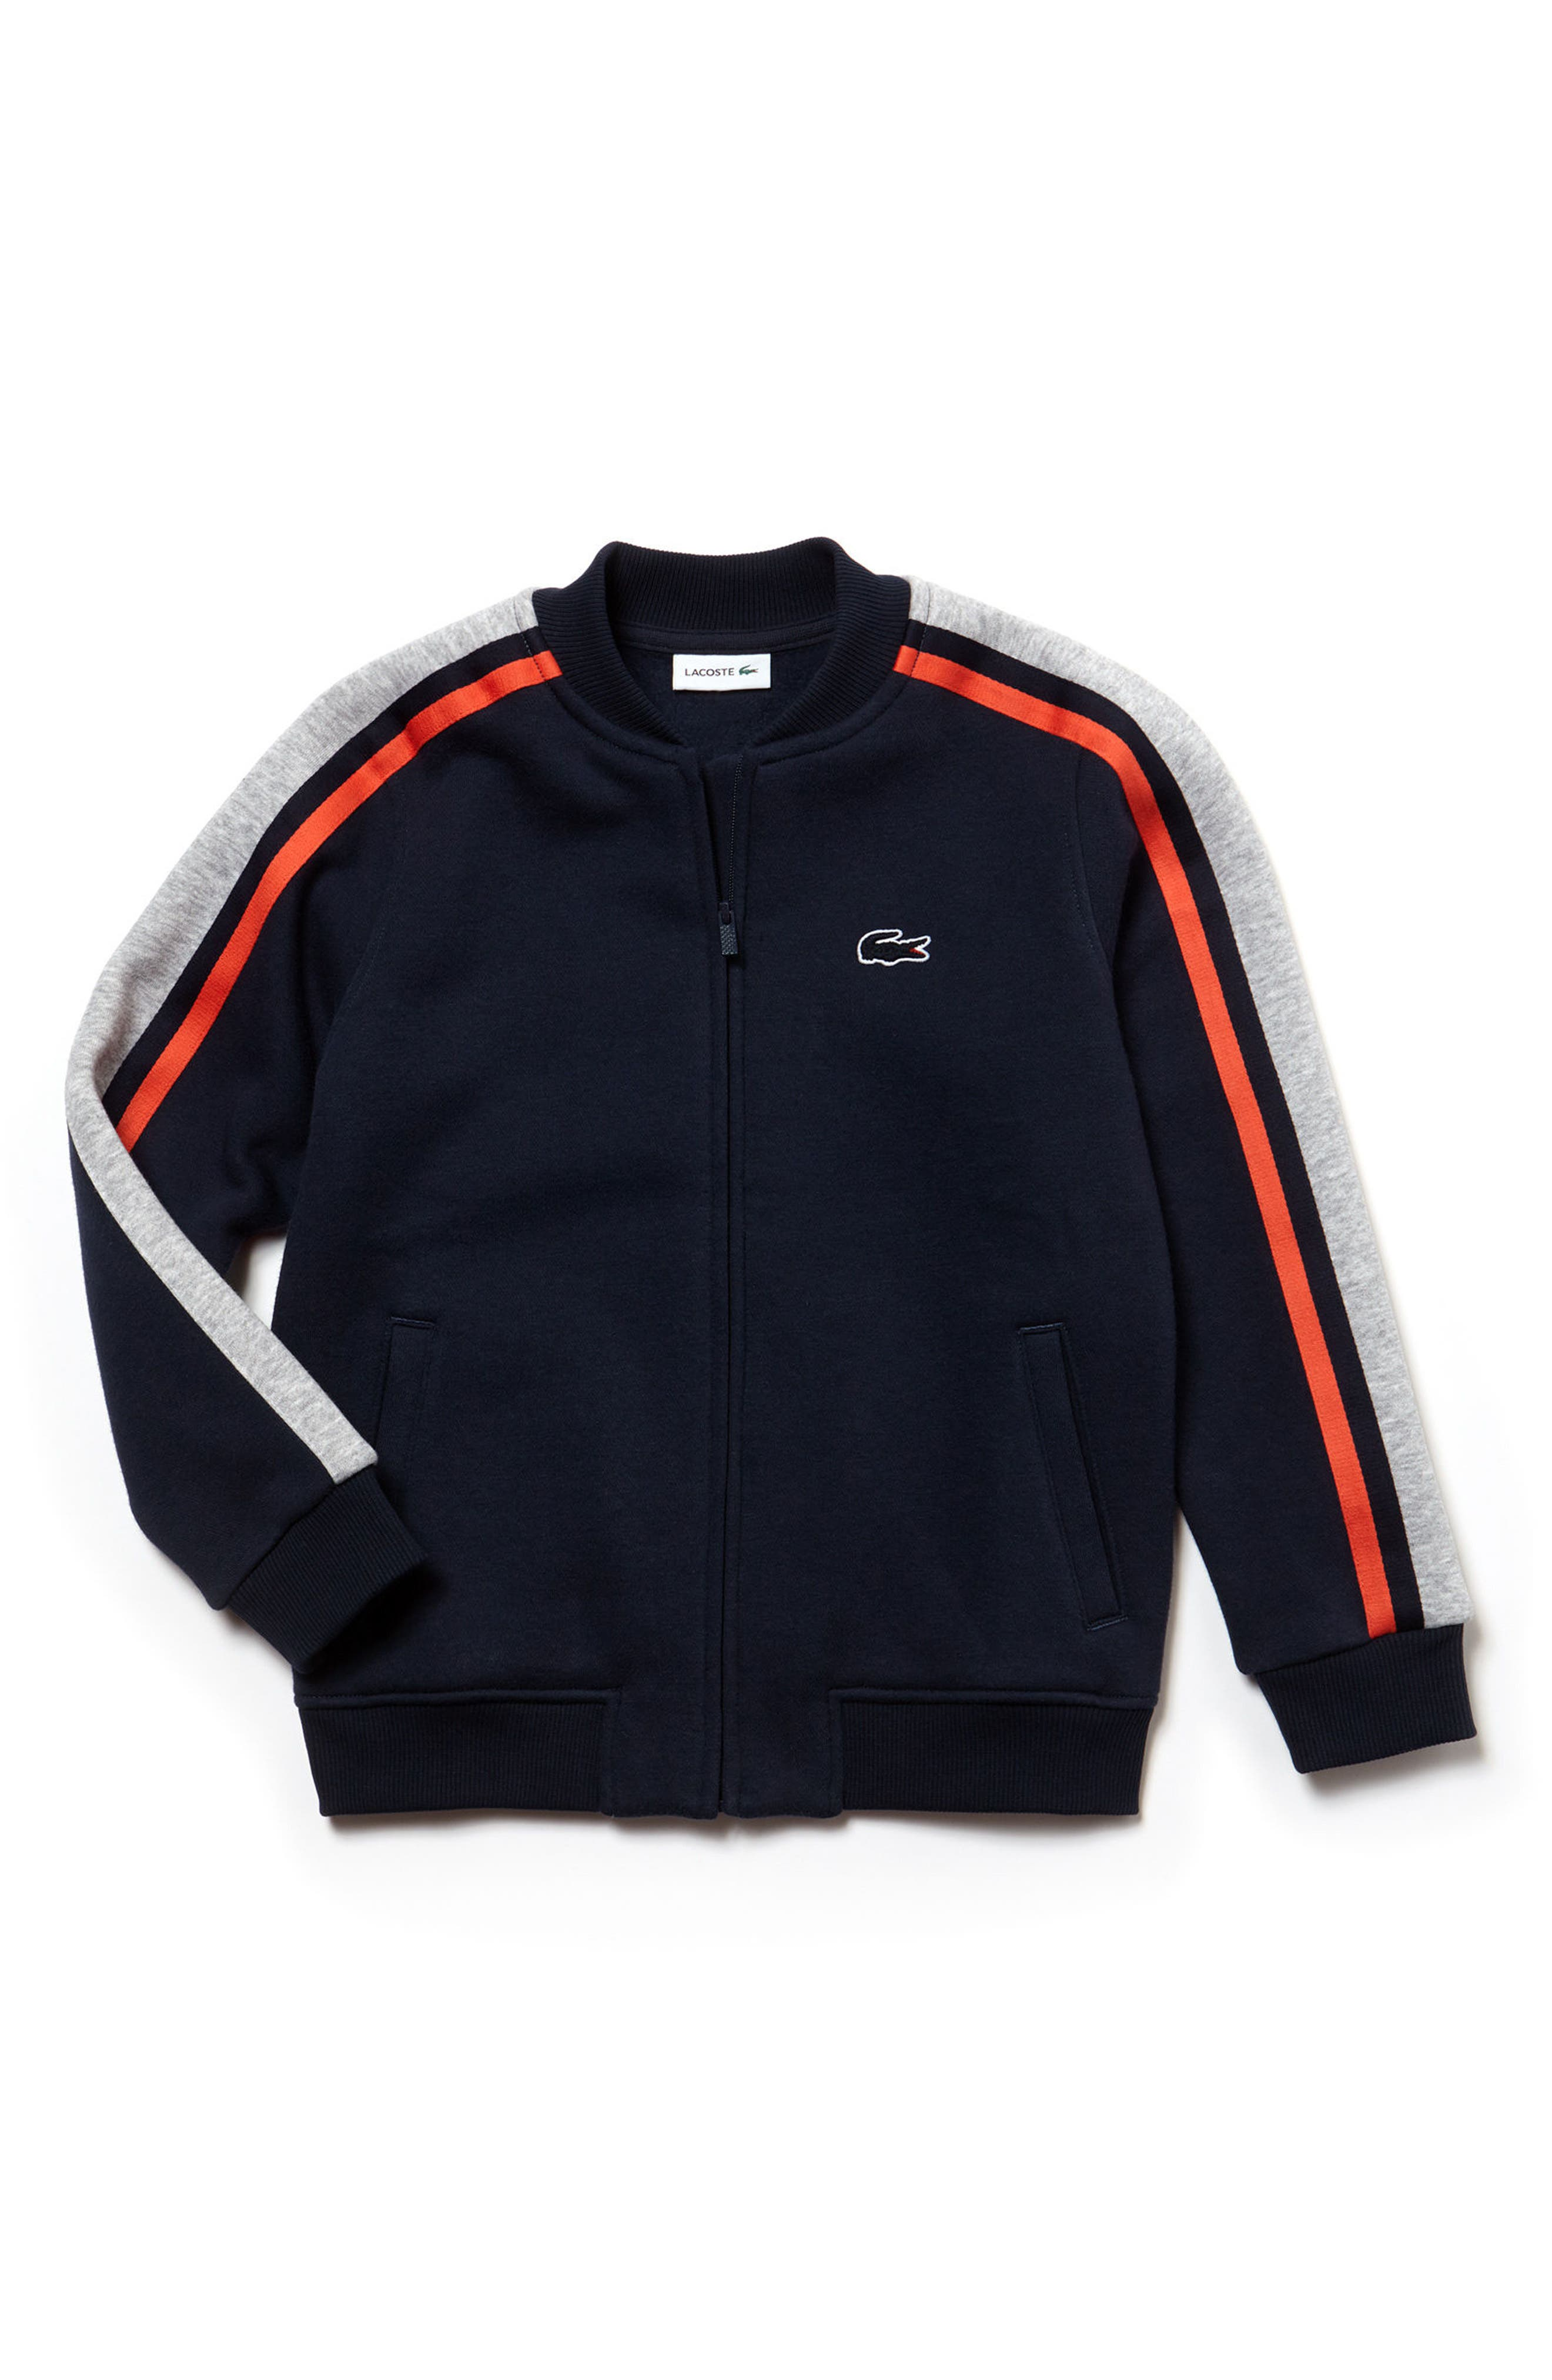 Athleisure Zip Jacket,                         Main,                         color, Navy Blue/ Silver Chine